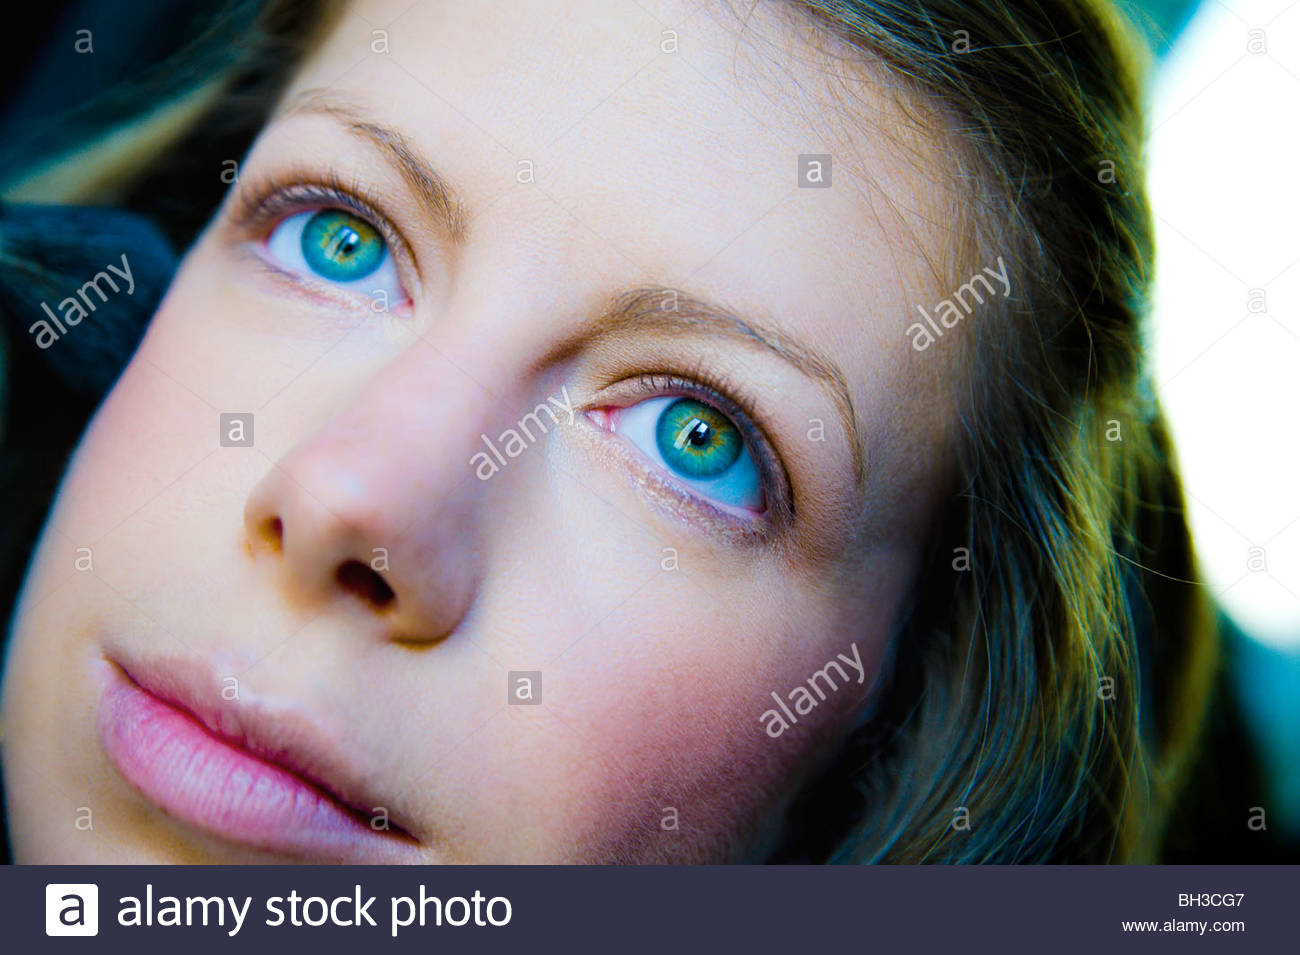 Close-up of young woman's face - Stock Image